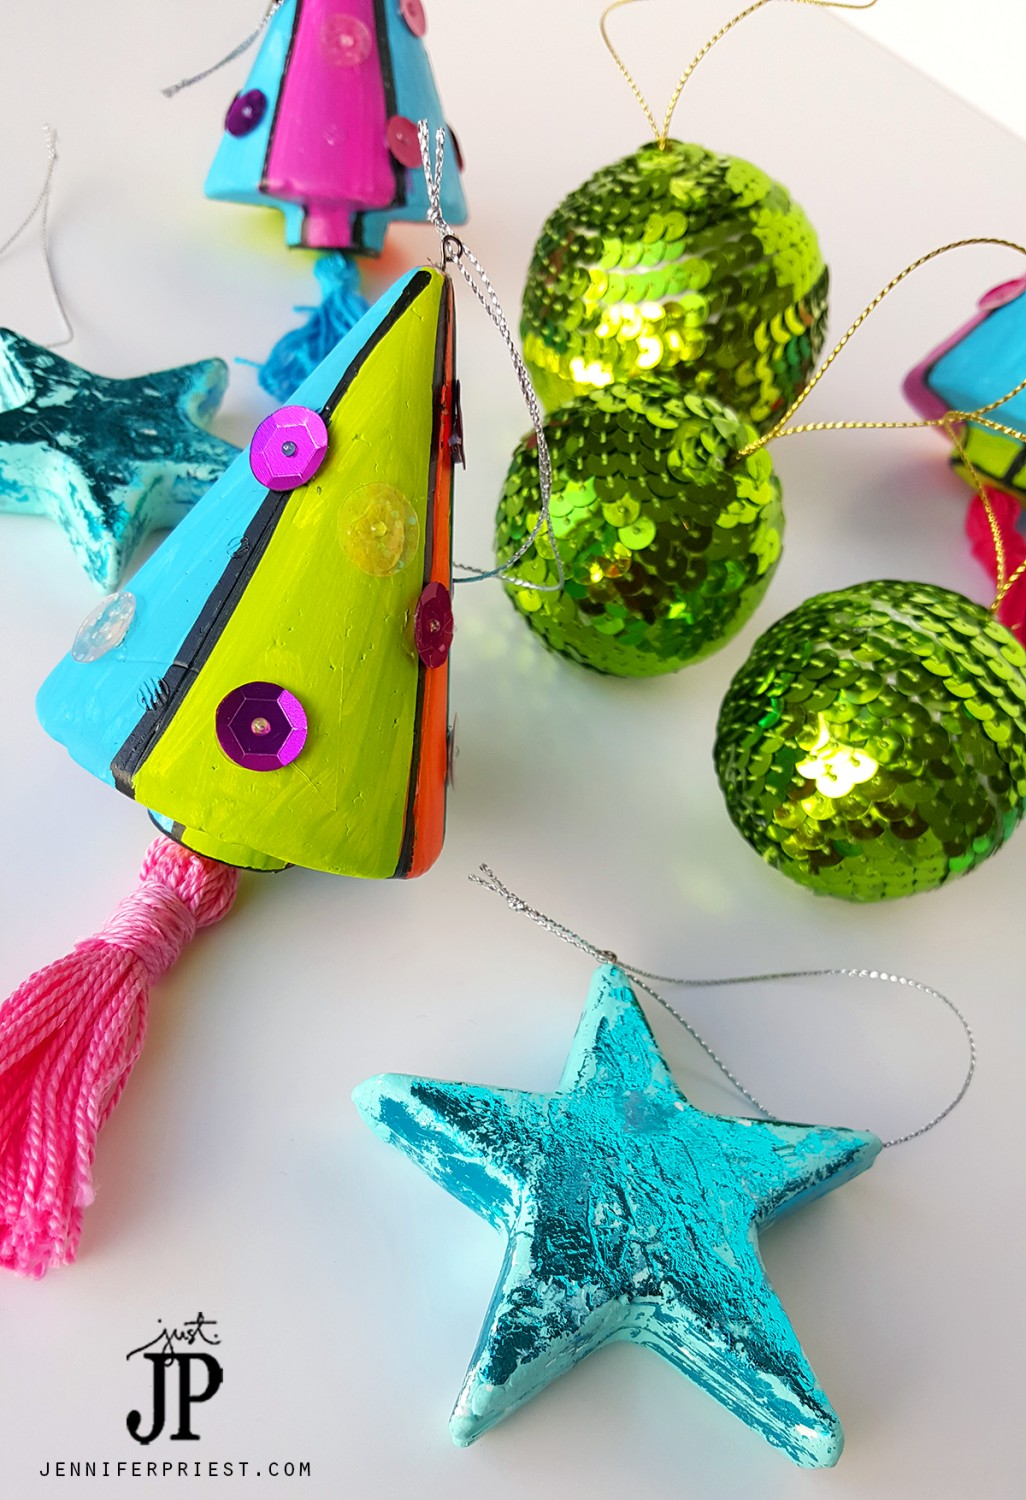 3 Easy Diy Storage Ideas For Small Kitchen: 3 Easy DIY Christmas Ornaments With Foam